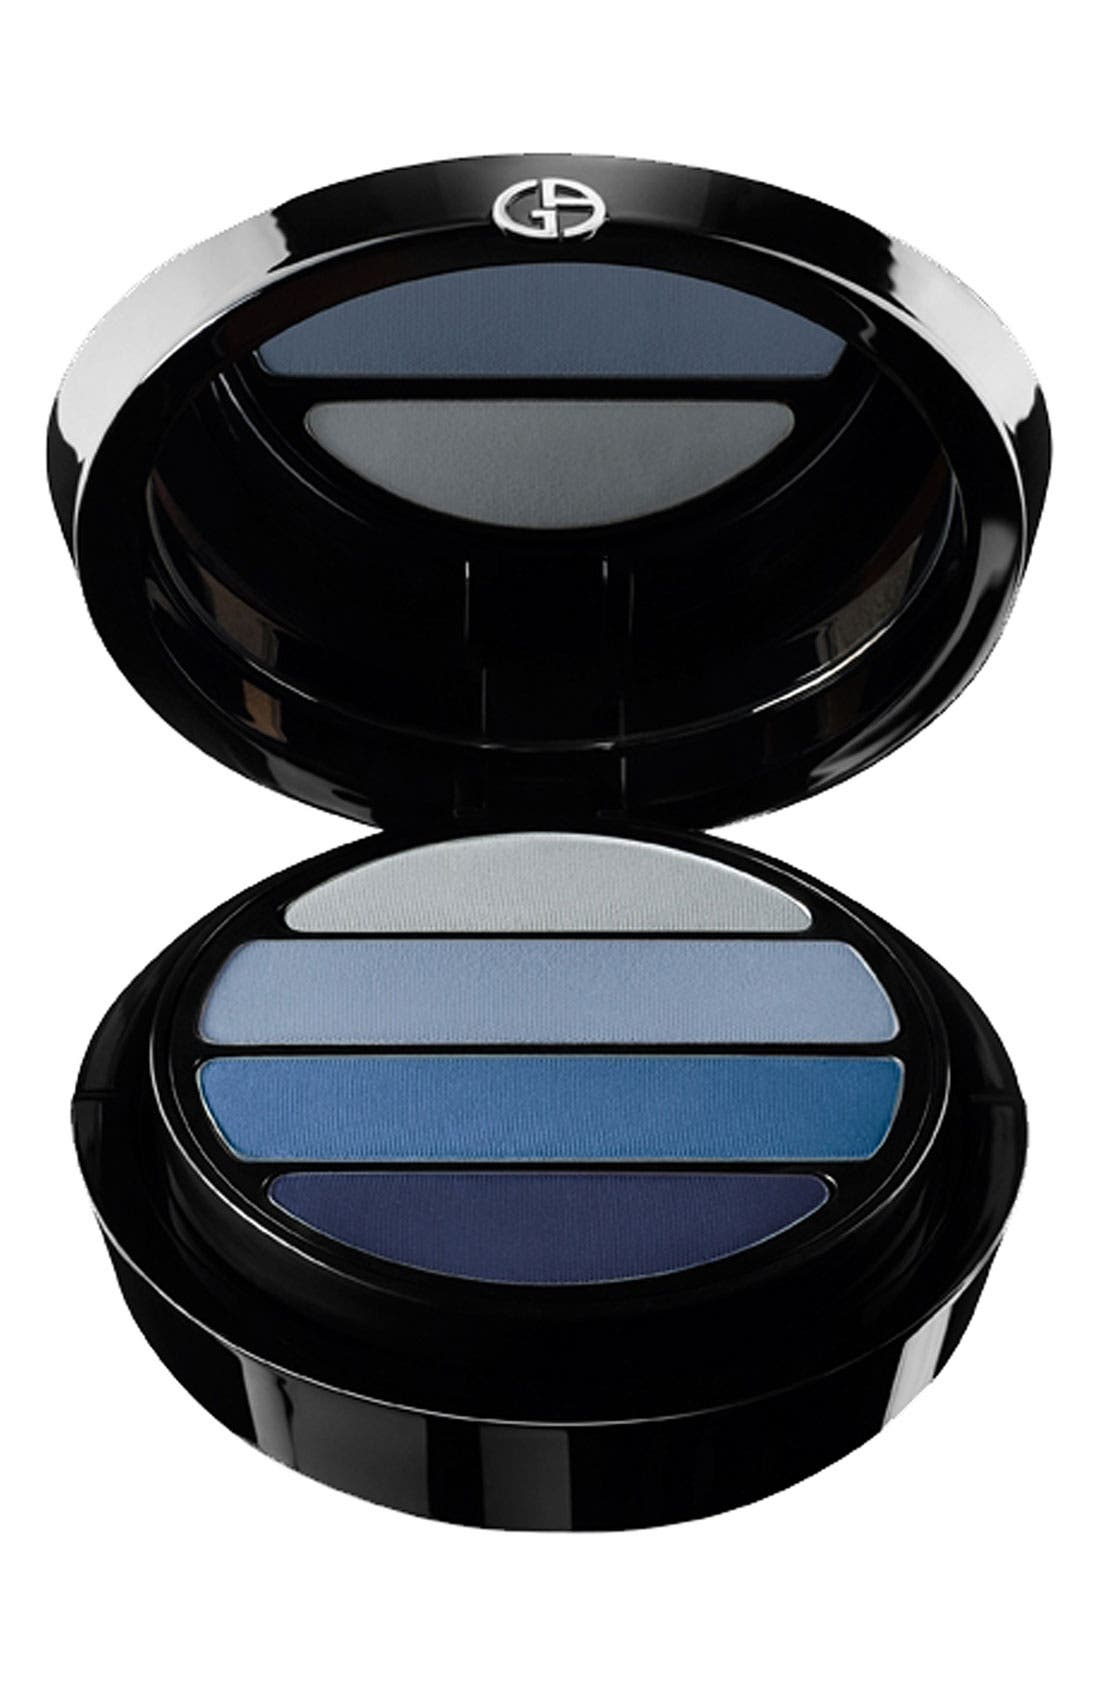 Giorgio Armani 'Eyes to Kill' Eye Palette